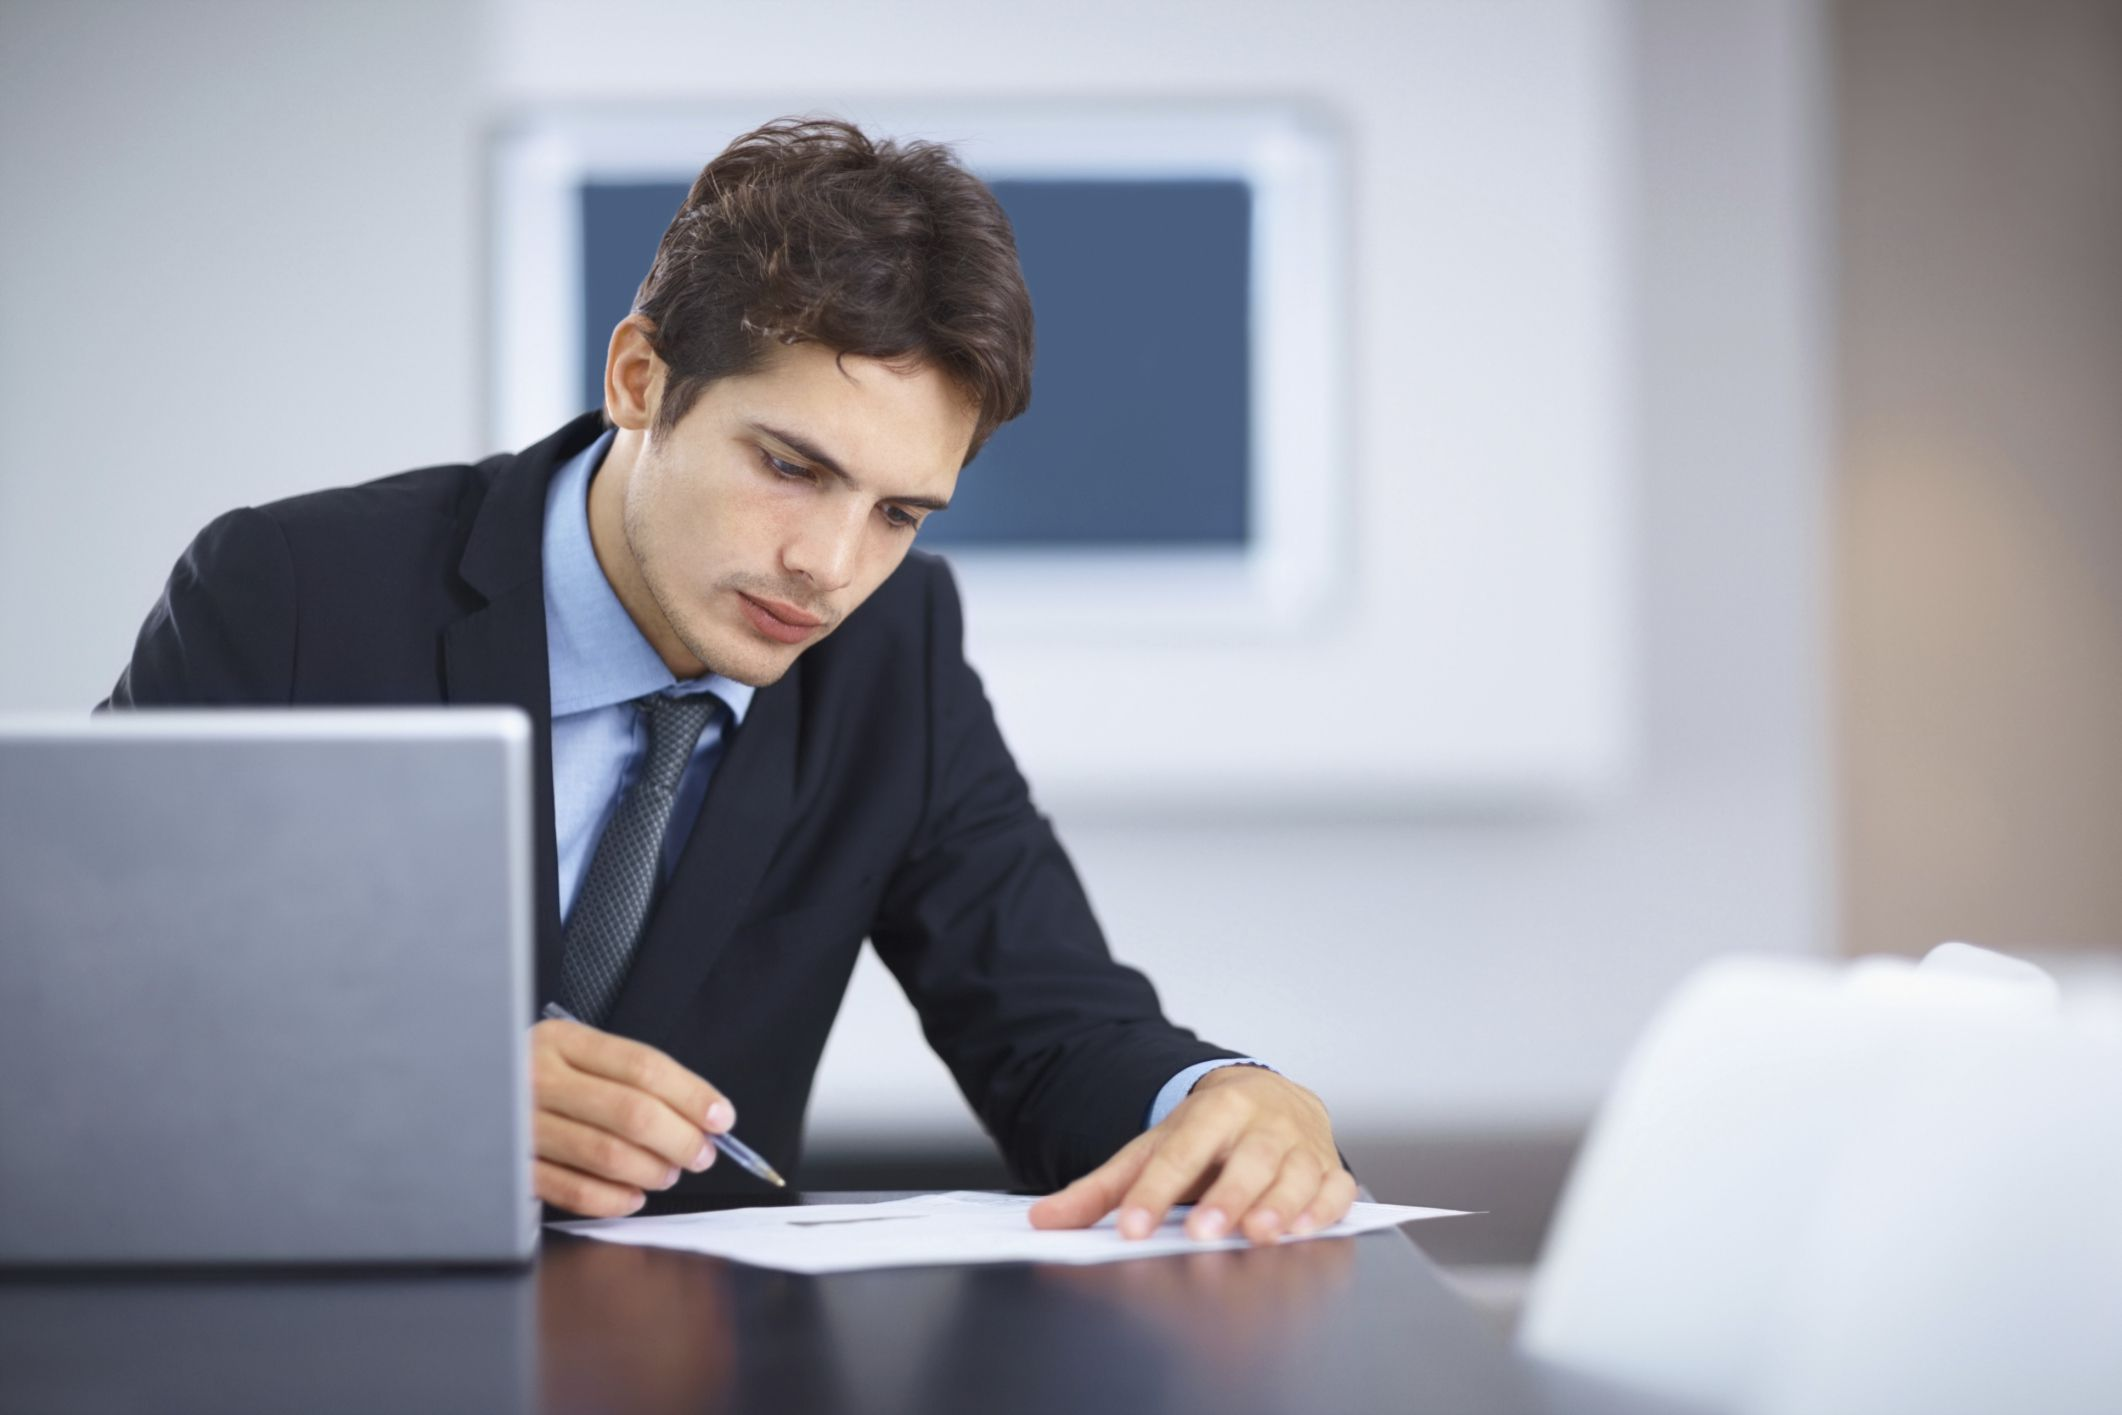 Business man filling out paper on desk in an office